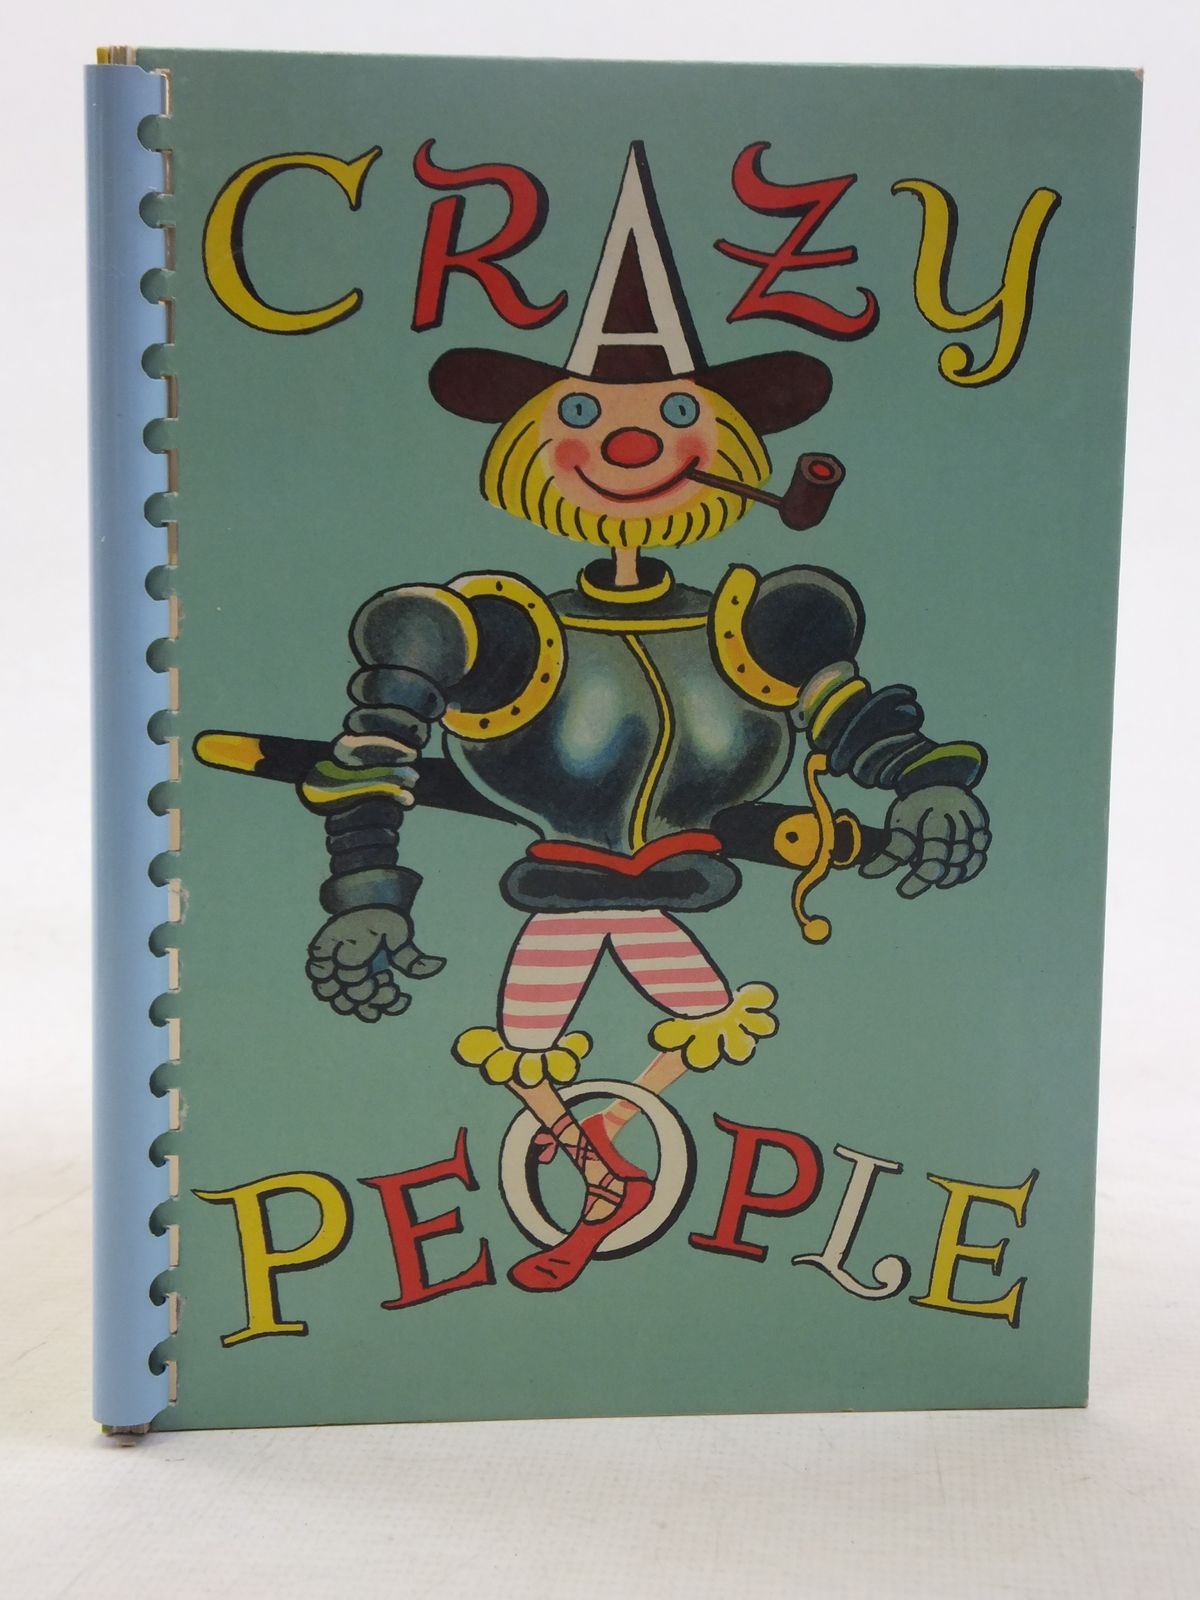 Photo of 8192 CRAZY PEOPLE illustrated by Trier, Walter published by Atrium Press Ltd. (STOCK CODE: 1607219)  for sale by Stella & Rose's Books